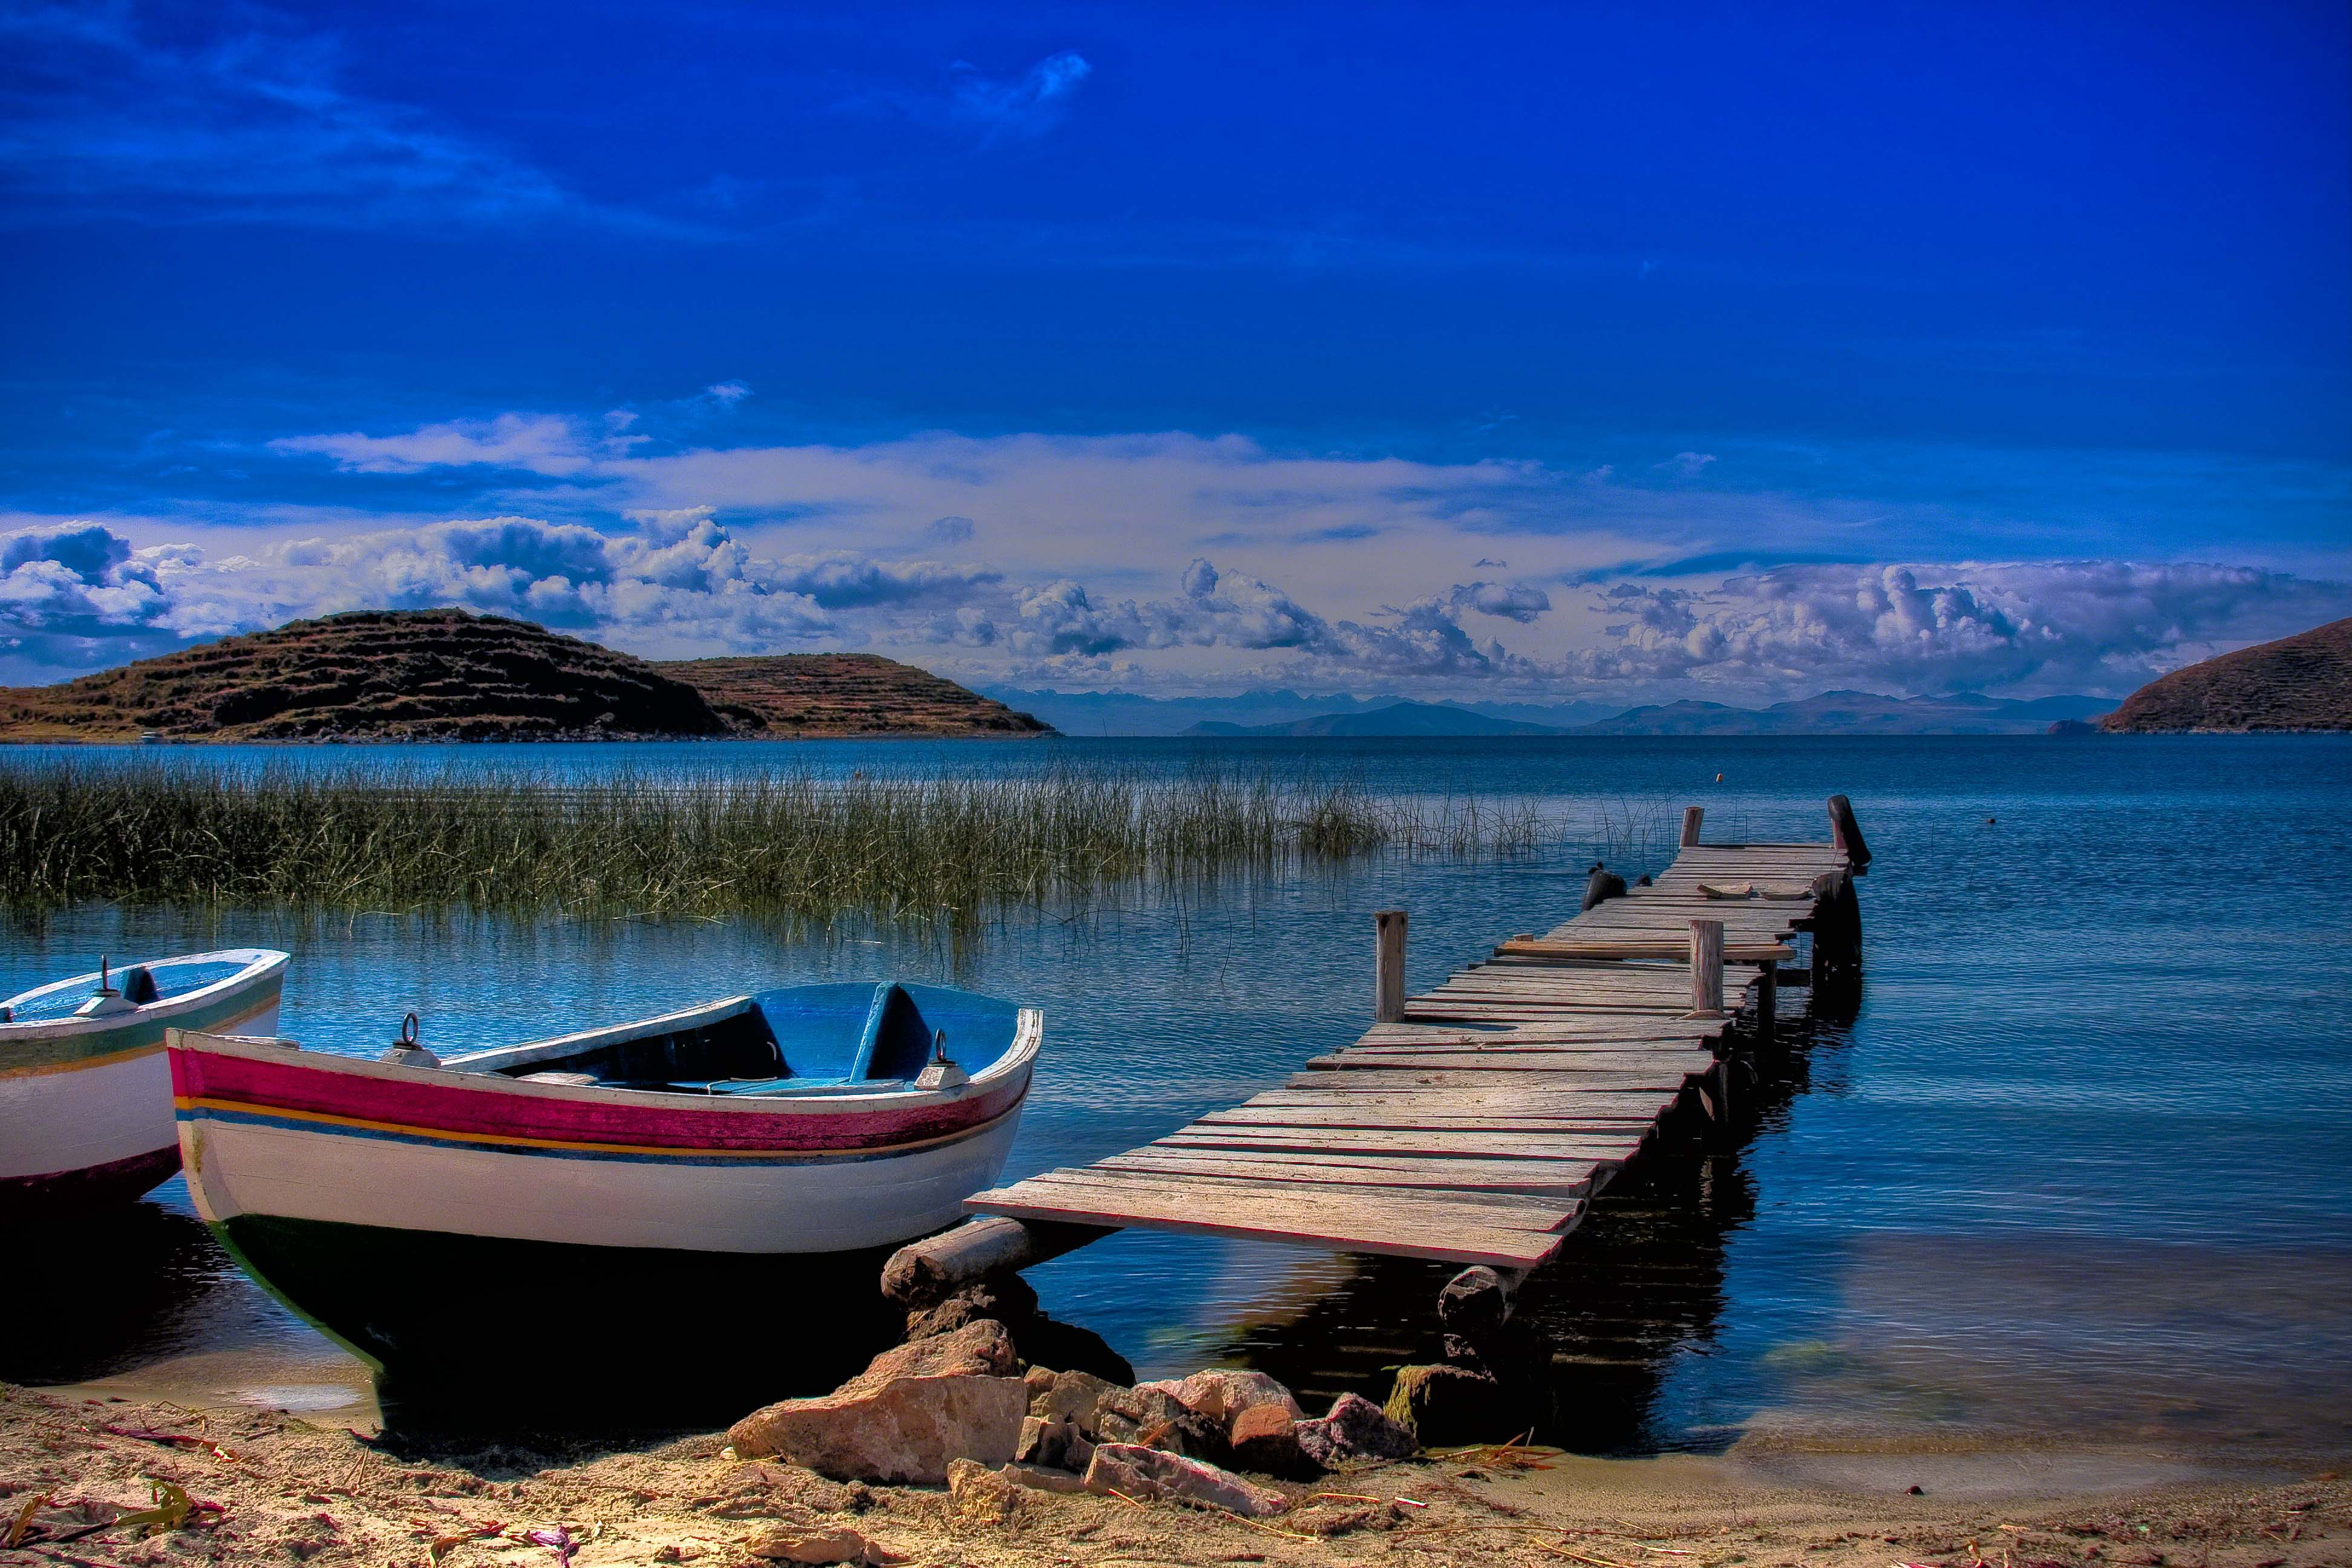 Lake Titicaca Wallpapers Wallpapers High Quality | Download Free